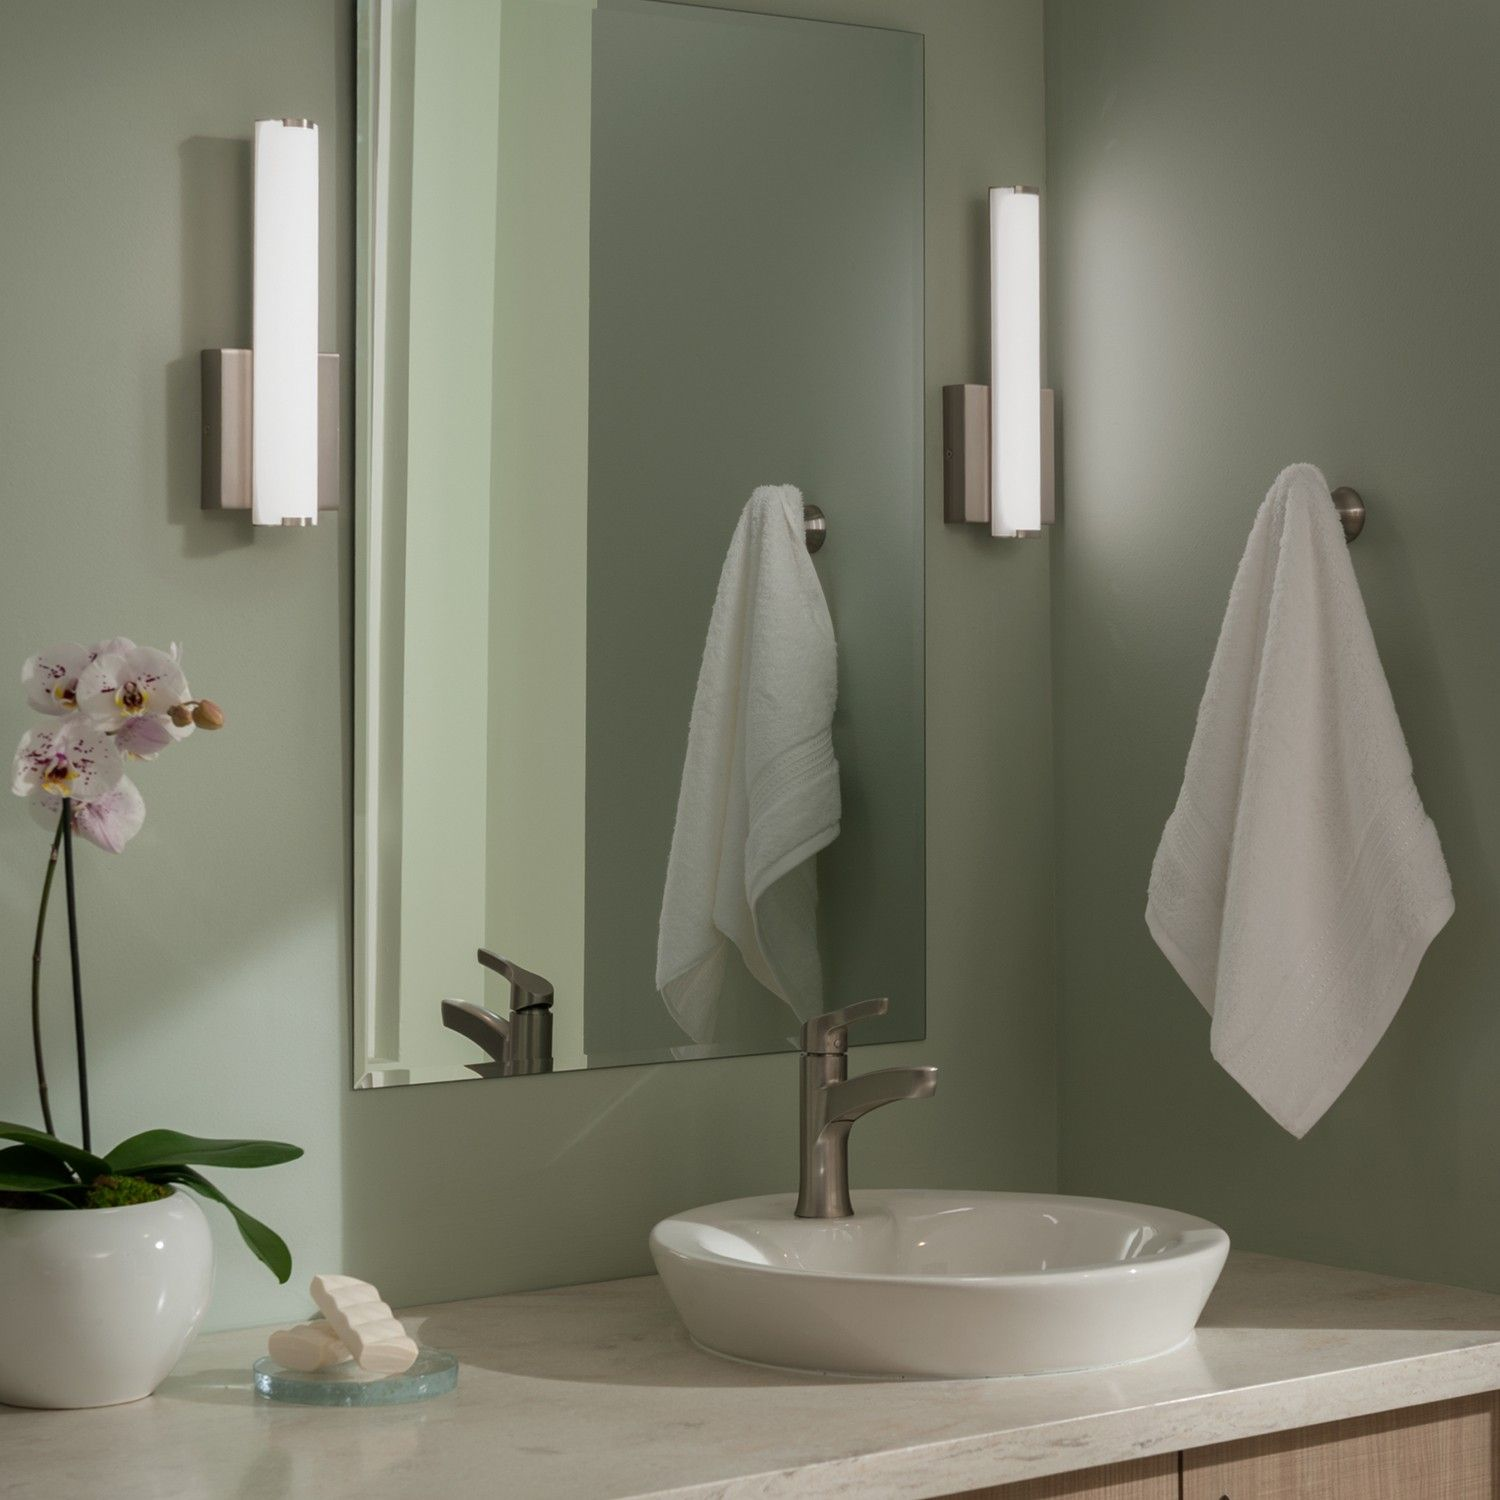 Top 10: TECH Lighting Pendants and Fixtures | Bath vanities ...